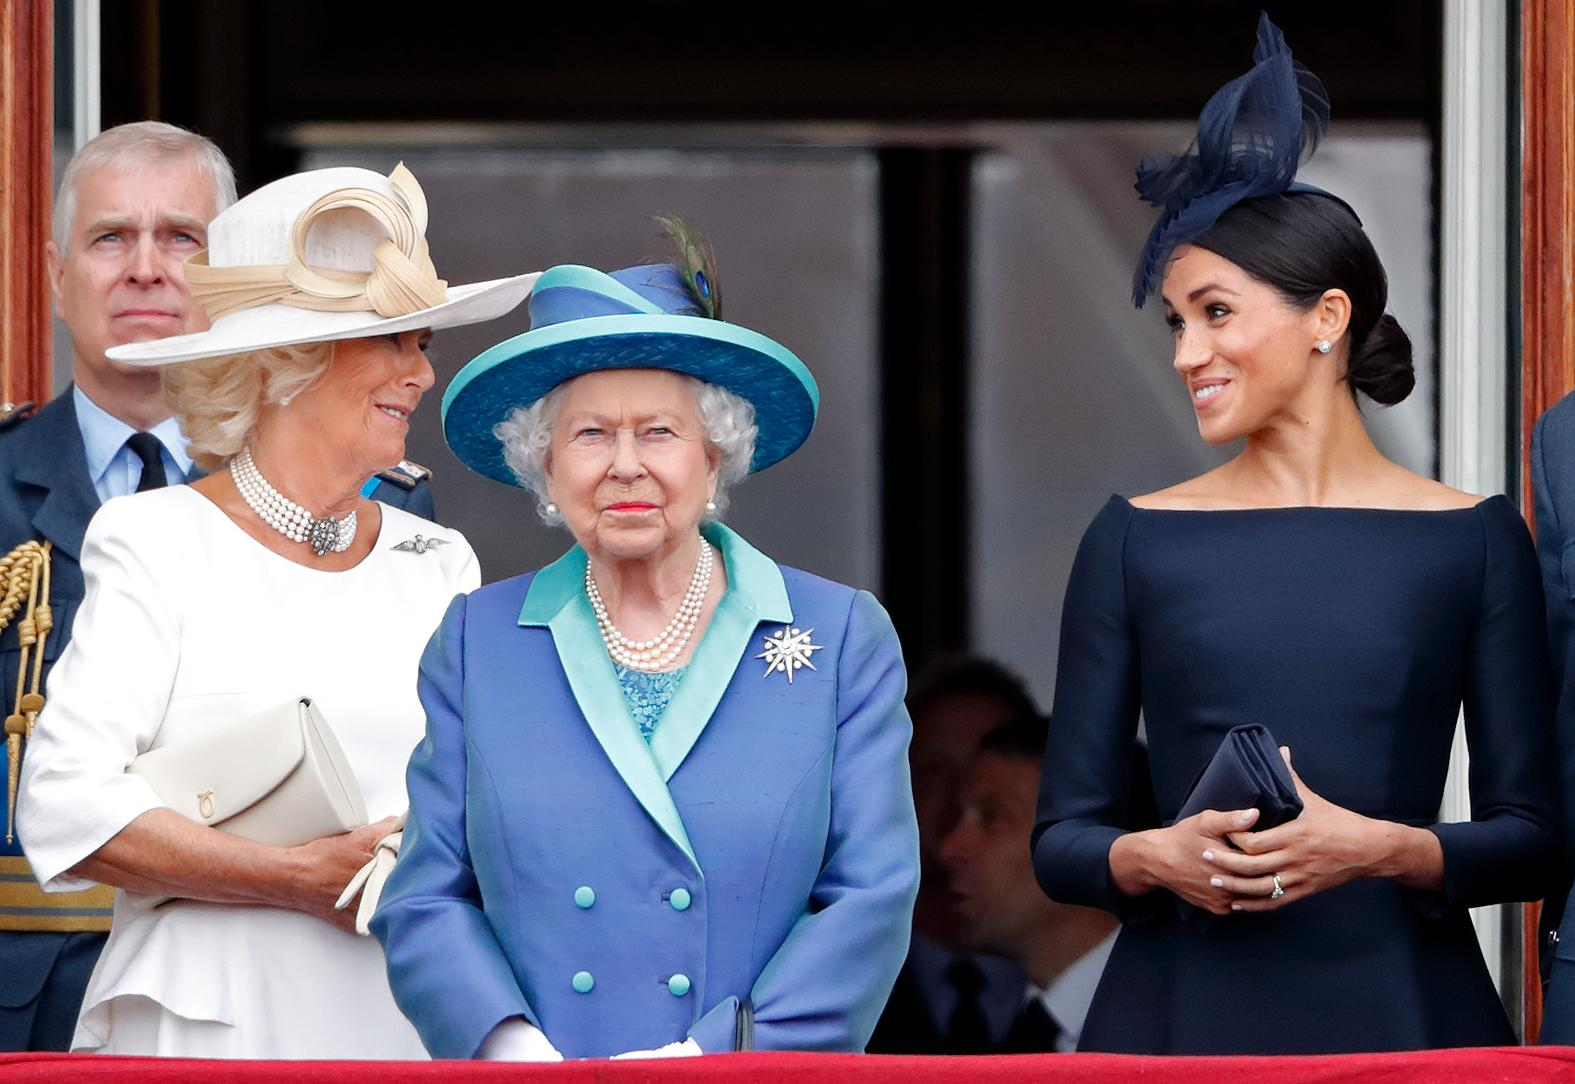 LONDON, UNITED KINGDOM - JULY 10: (EMBARGOED FOR PUBLICATION IN UK NEWSPAPERS UNTIL 24 HOURS AFTER CREATE DATE AND TIME) Camilla, Duchess of Cornwall, Queen Elizabeth II and Meghan, Duchess of Sussex watch a flypast to mark the centenary of the Royal Air Force from the balcony of Buckingham Palace on July 10, 2018 in London, England. The 100th birthday of the RAF, which was founded on on 1 April 1918, was marked with a centenary parade with the presentation of a new Queen's Colour and flypast of 100 aircraft over Buckingham Palace. (Photo by Max Mumby/Indigo/Getty Images)